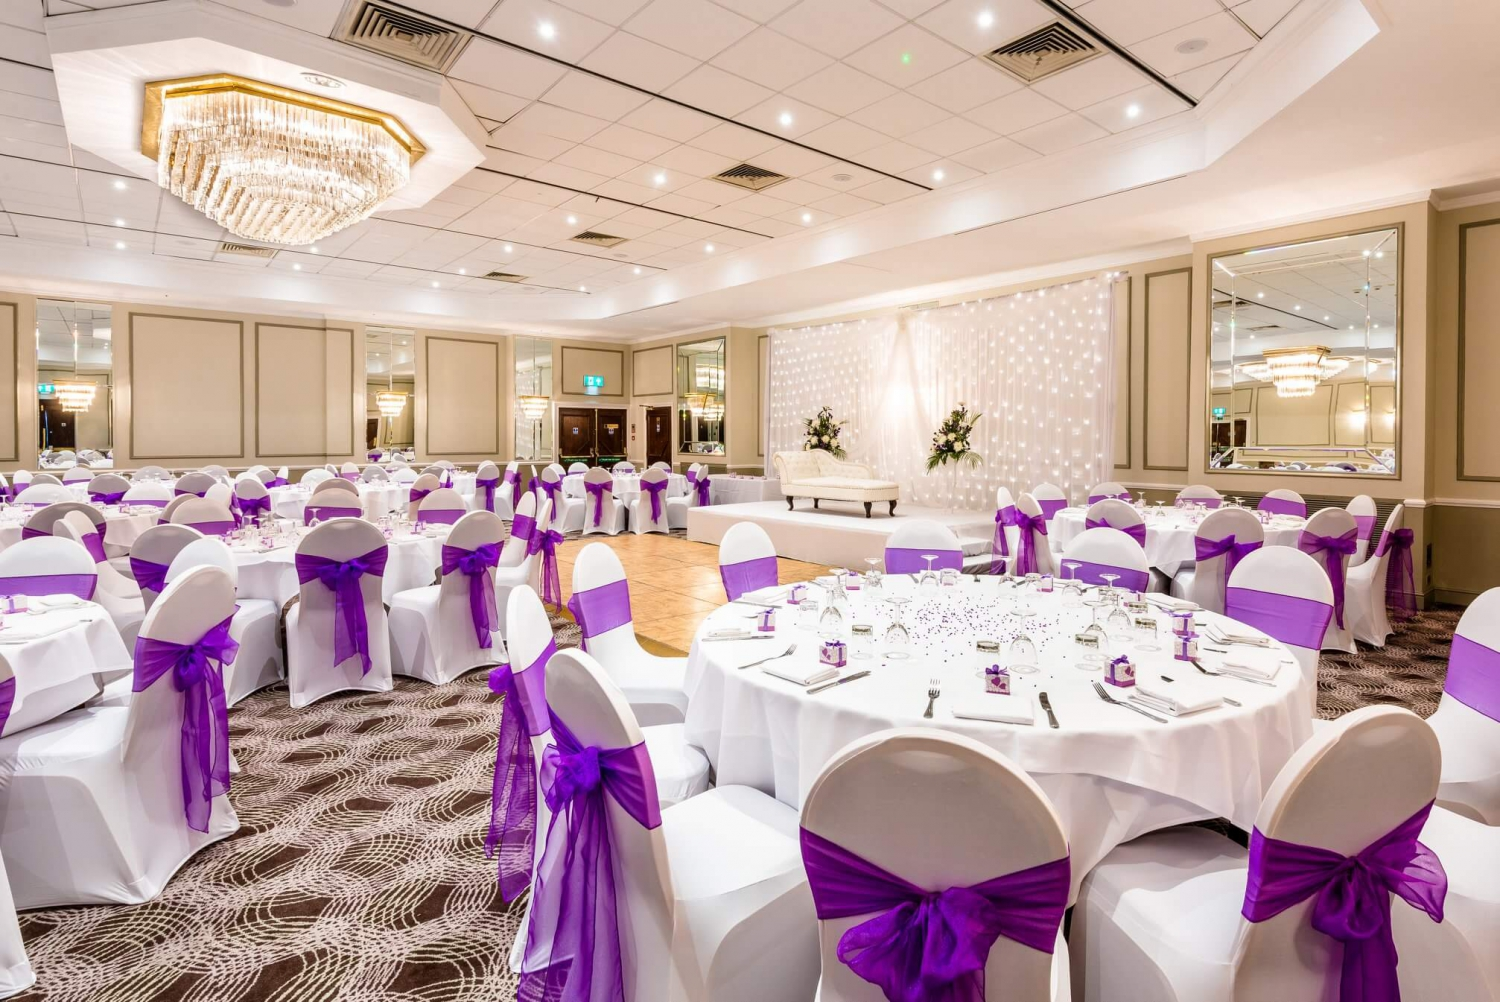 The Holiday Inn Brighton Wedding Venue